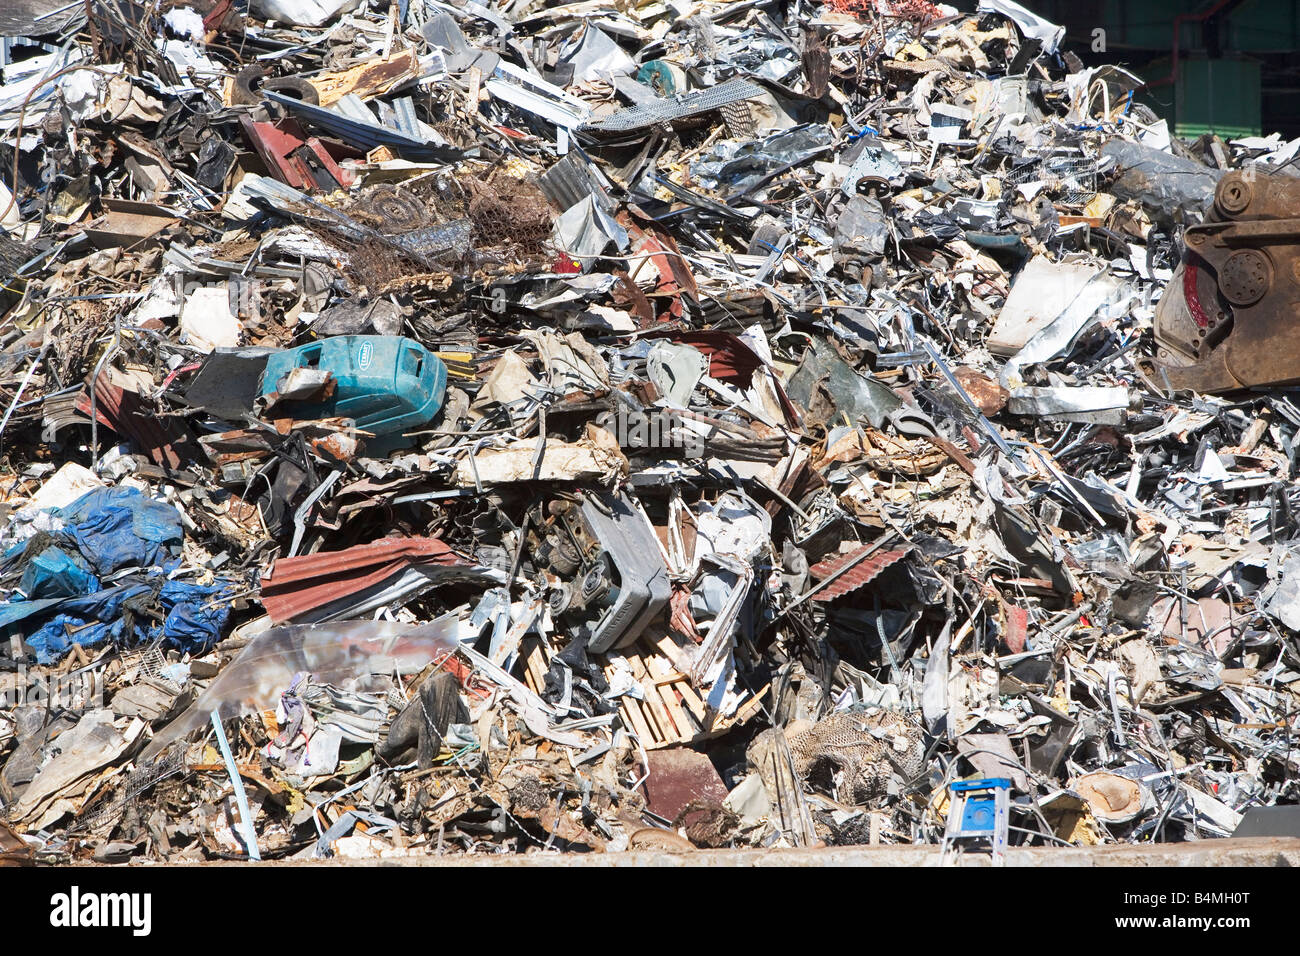 environmental pollution pape Environmental pollution refers to the introduction of harmful pollutants into the environment the major types of environmental pollution are air pollution, water pollution, noise pollution, soil pollution, thermal pollution, and light pollution.